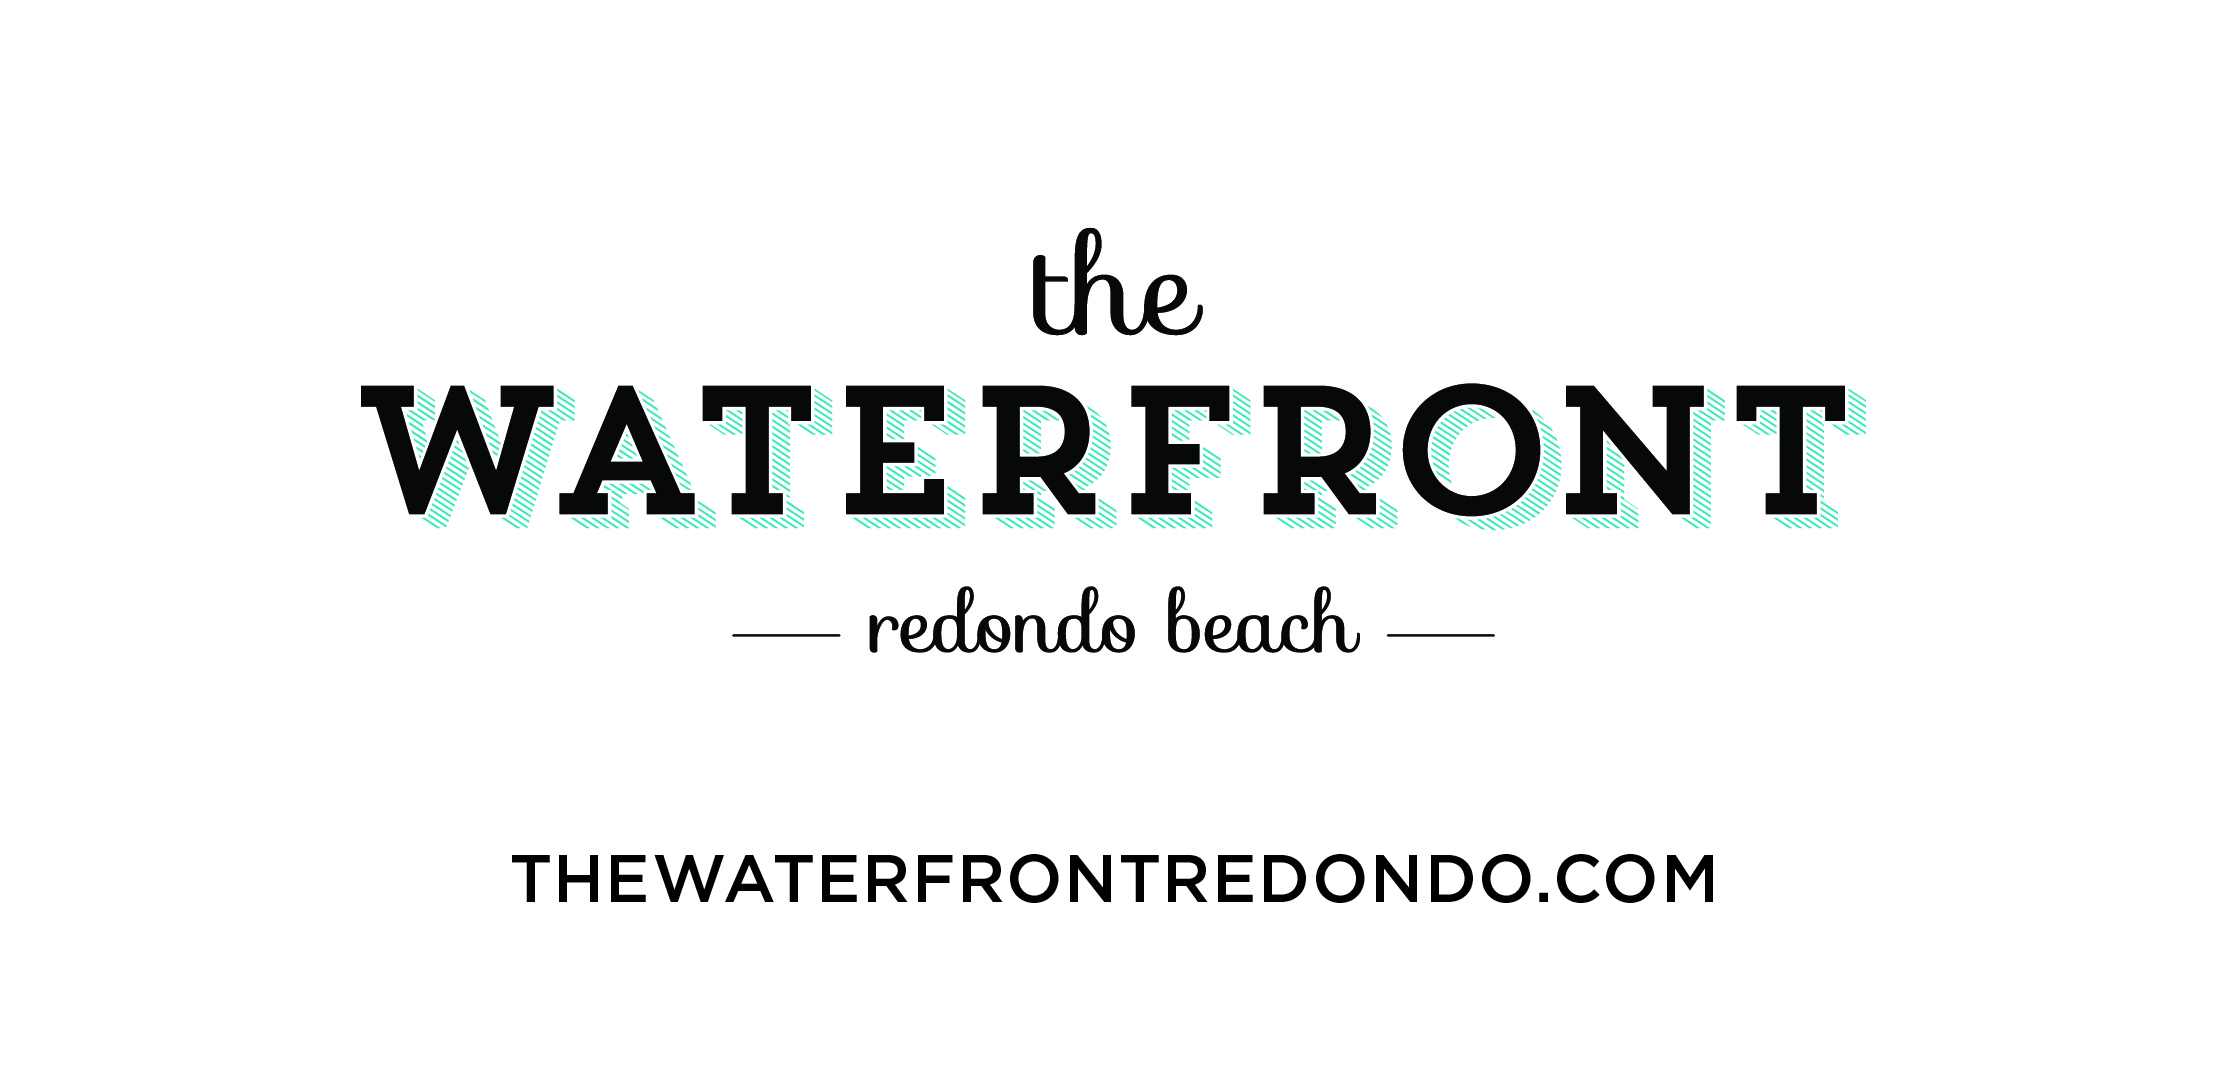 Waterfront Redondo Beach